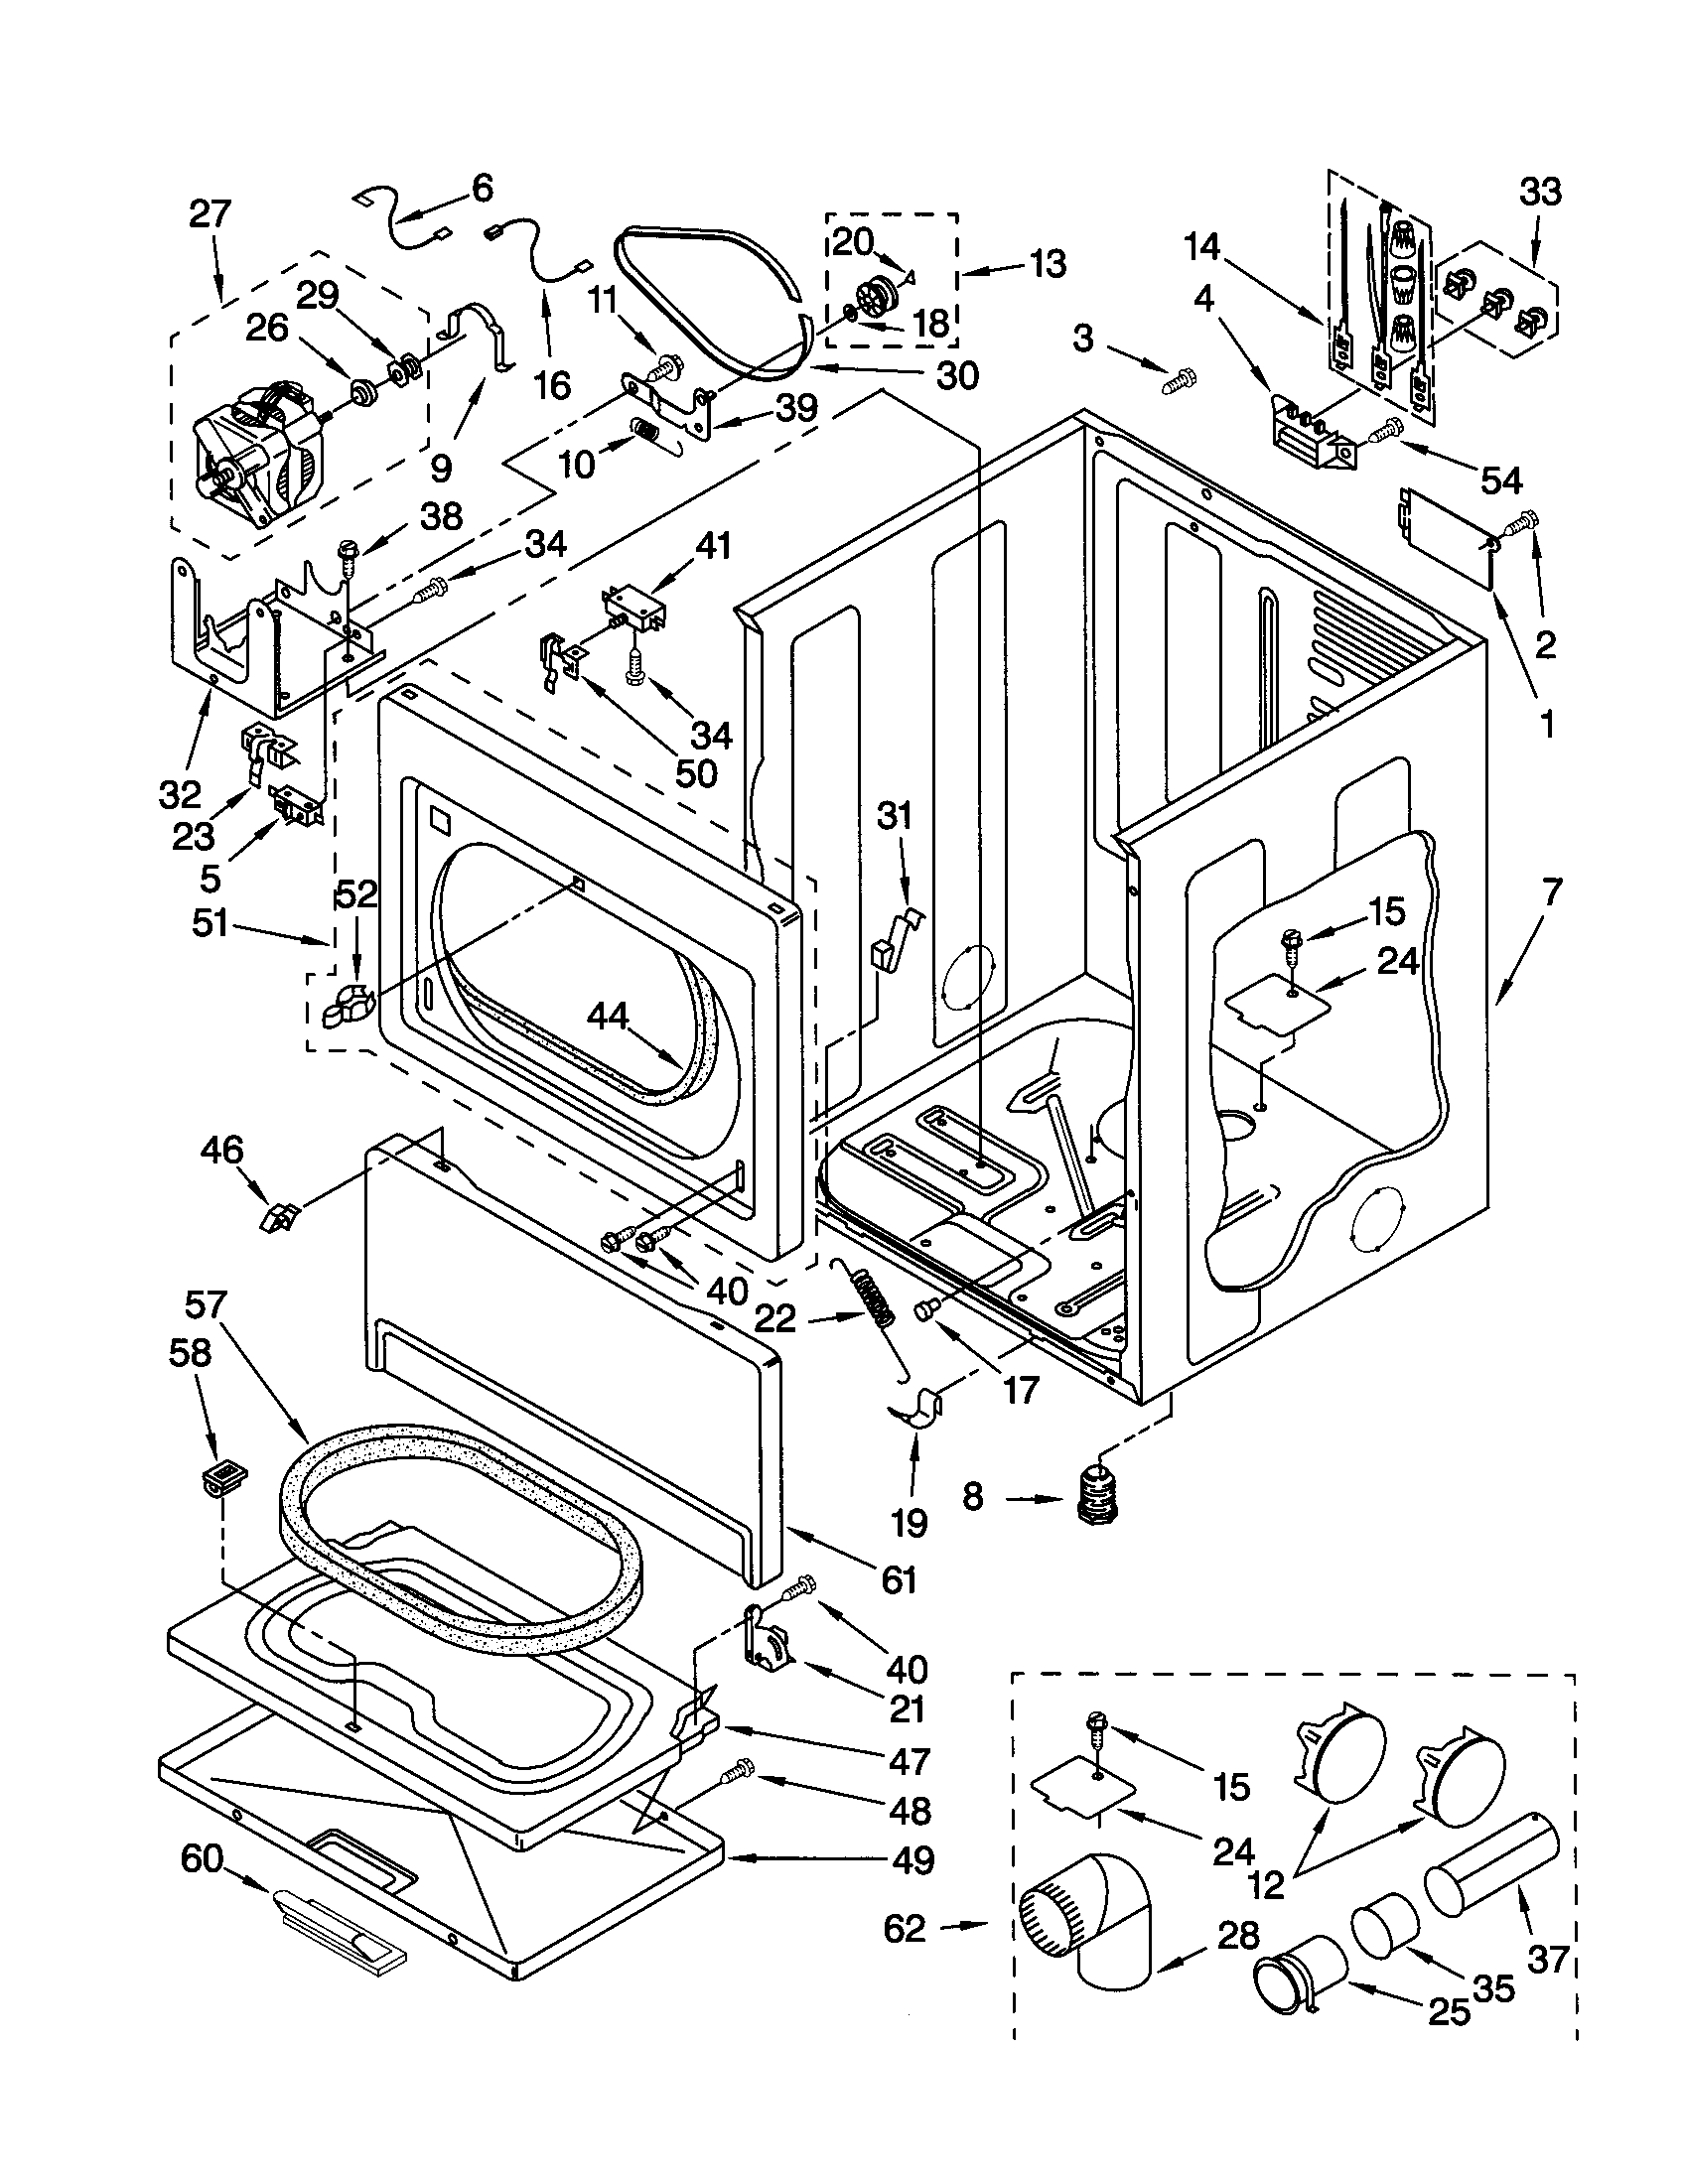 kenmore 90 series dryer parts diagram 7 way trailer plug wiring gmc model 11062912100 residential genuine